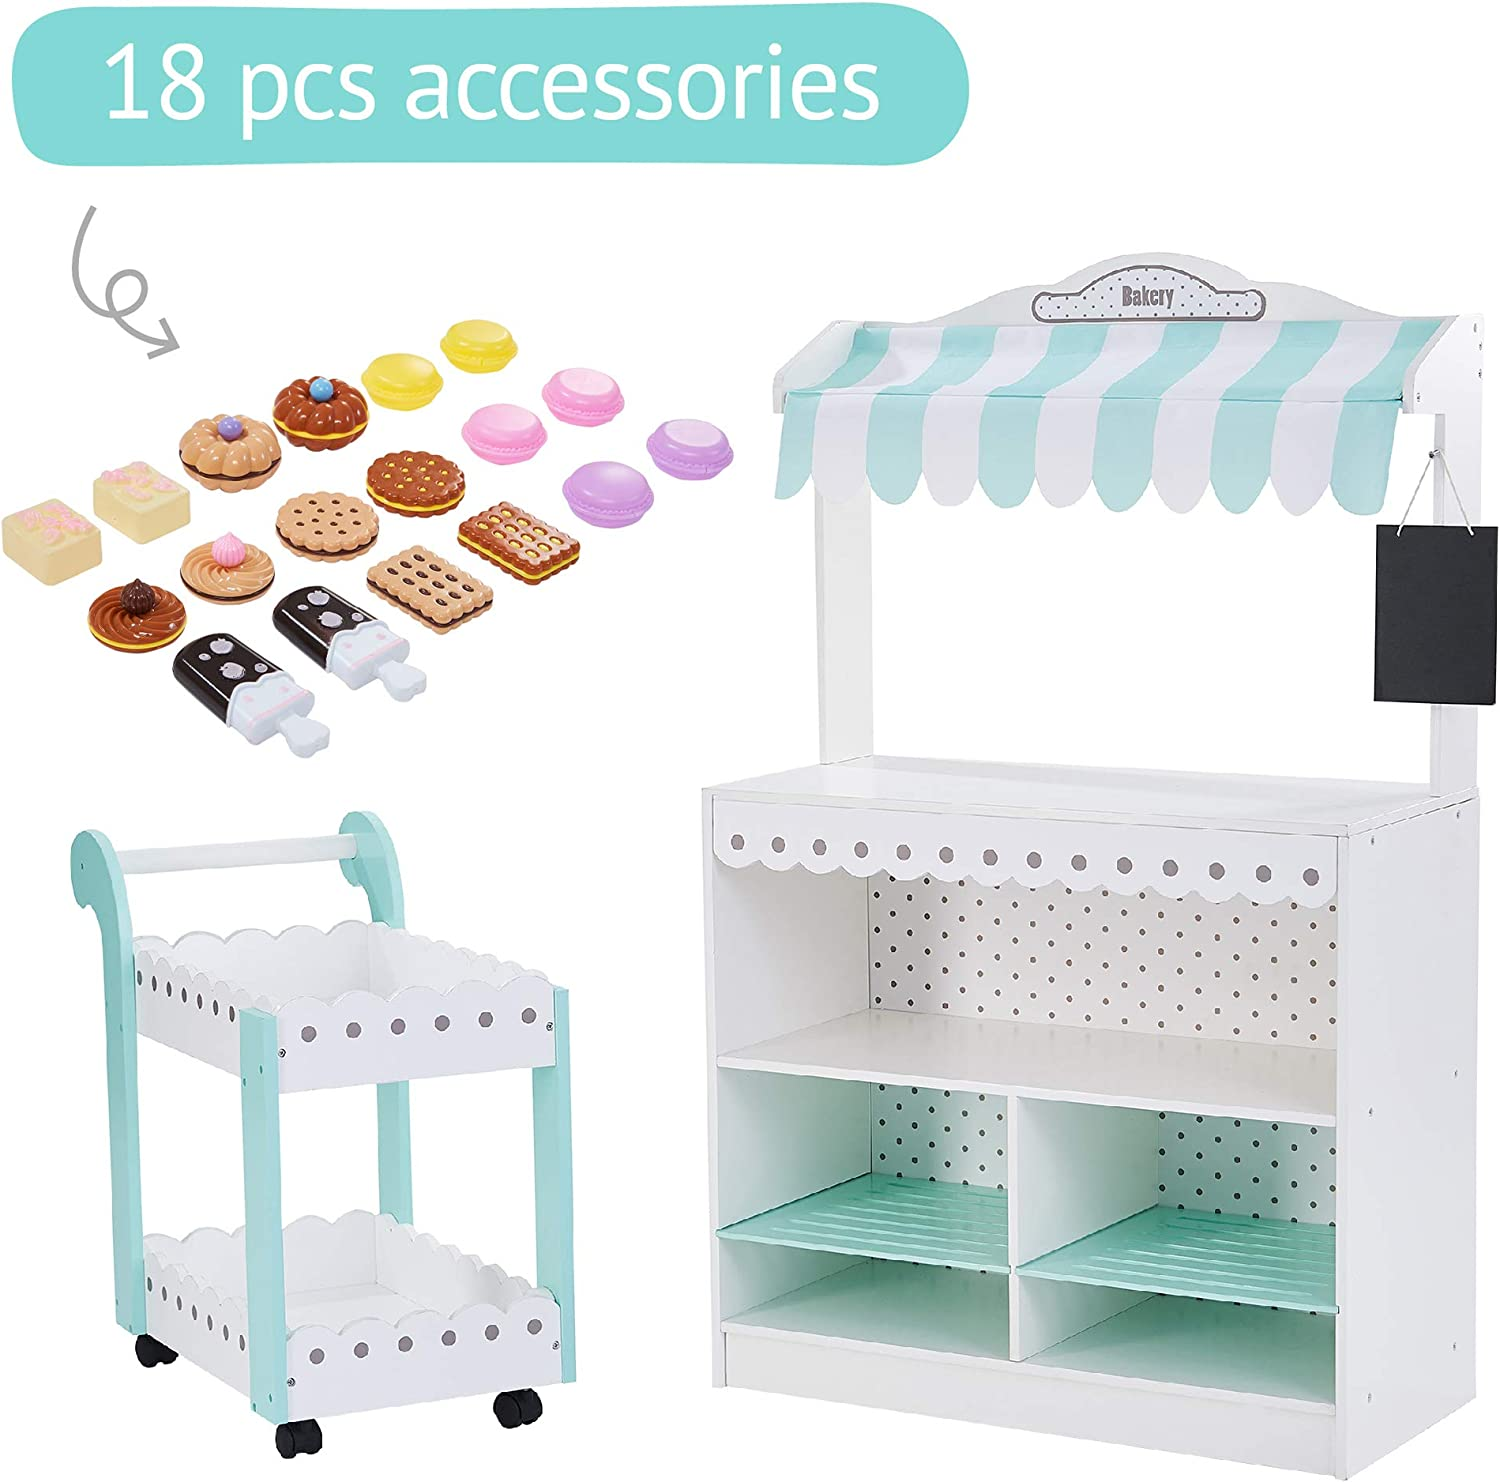 Teamson Kids - My Dream Wooden Bakery Shop Dessert Stand Pretend Play with 18 Pieces Accessories for Kids 3 4 5 Years Old Boys Girls - White / Petrol